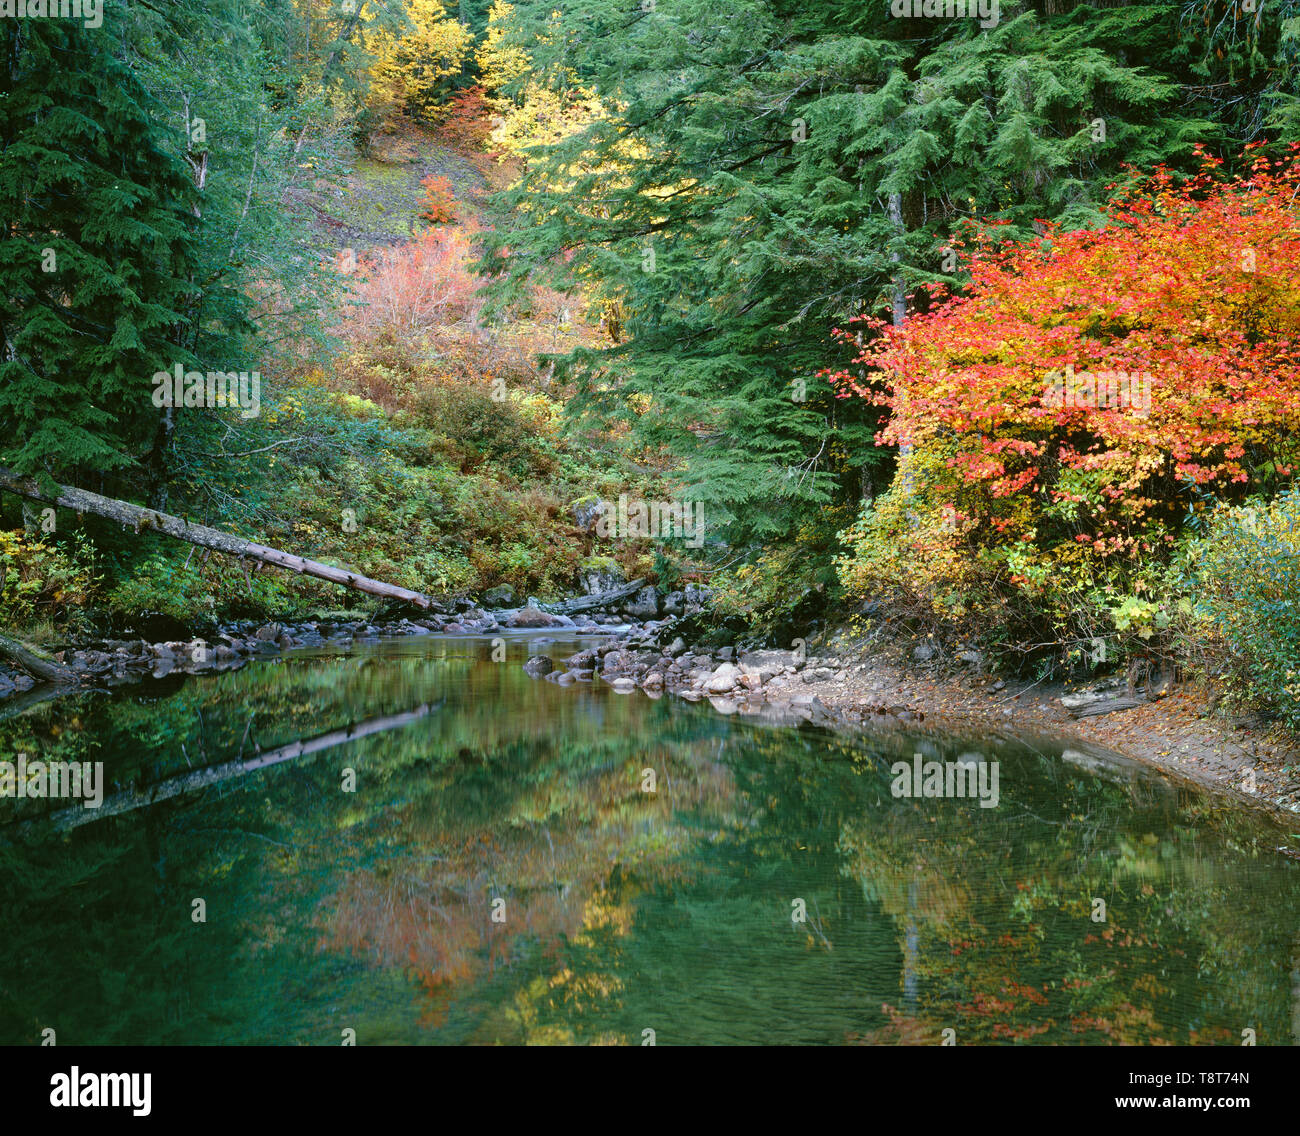 USA, Washington, Mt. Baker Snoqualmie National Forest, South Fork Sauk River reflects evergreen trees and autumn colored vine maple. - Stock Image